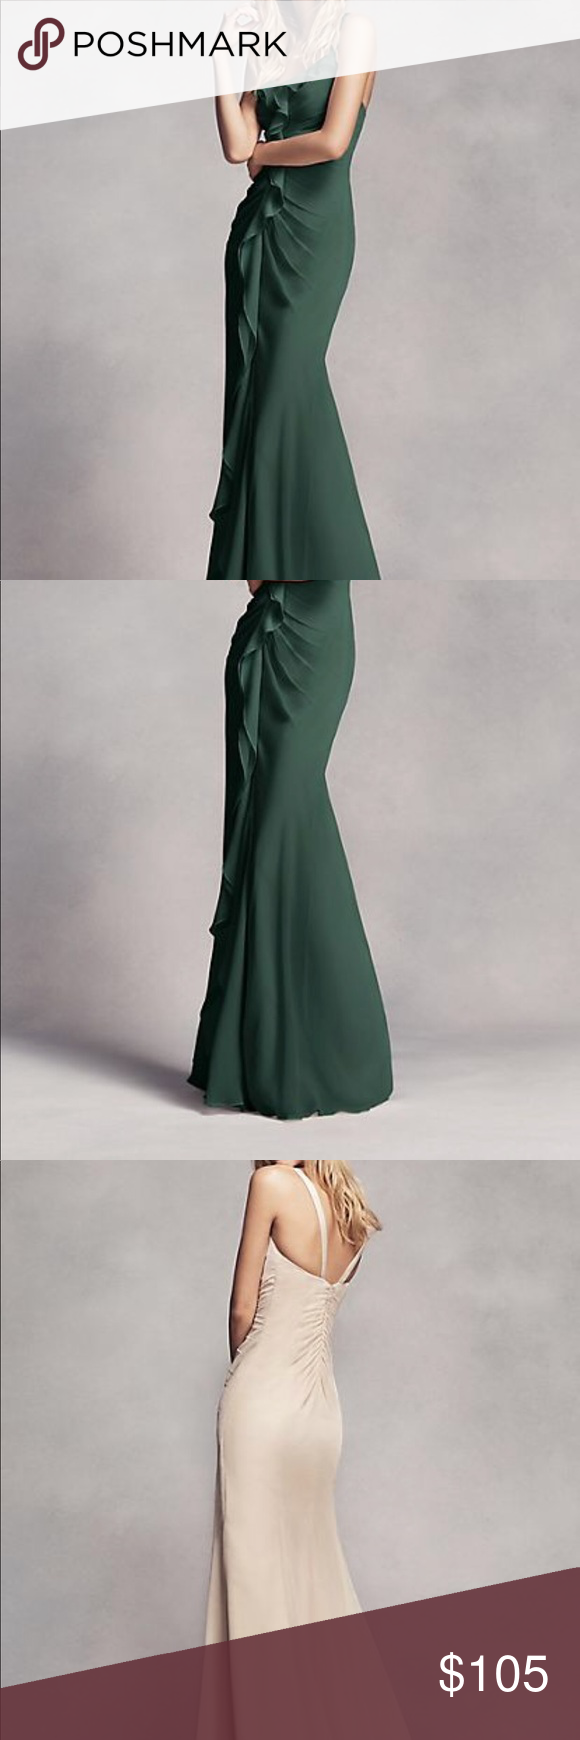 V e r a w a n g long ruched bridesmaid dress beautiful forest